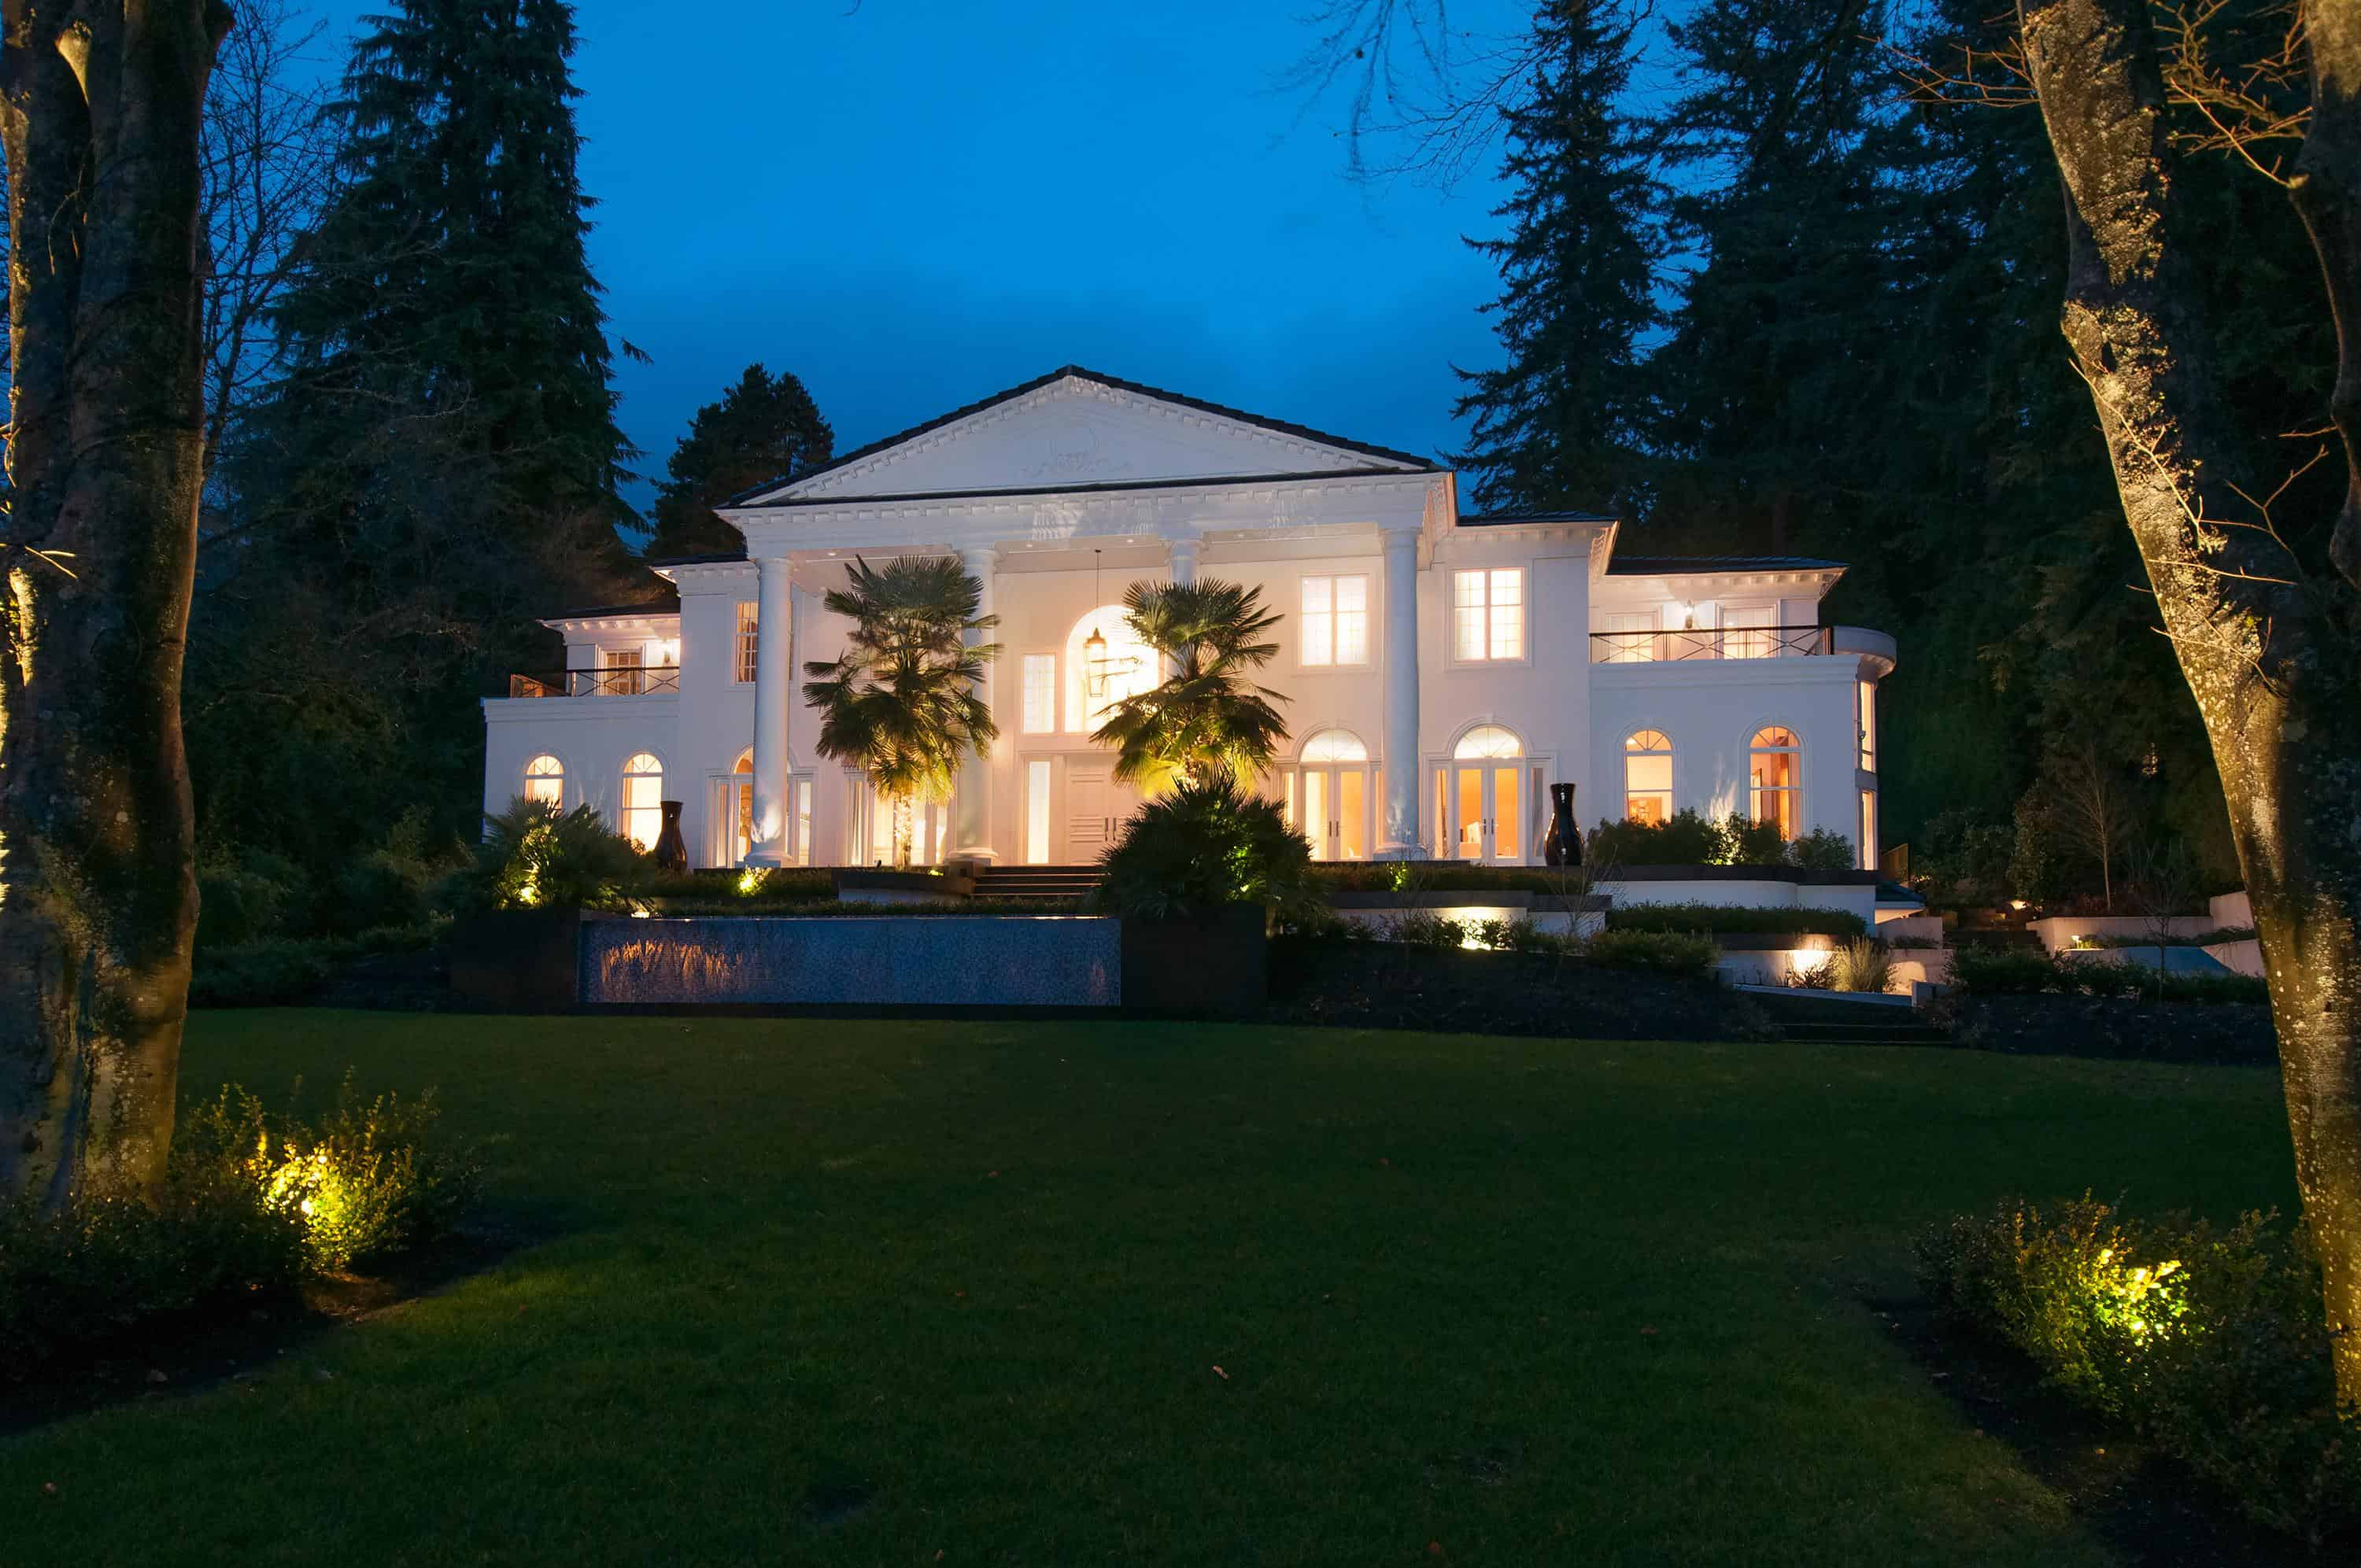 EcoLux☆Lifestyle: West Van's $22M 'White House' is Prime for Entertaining [PHOTOS/VIDEO]